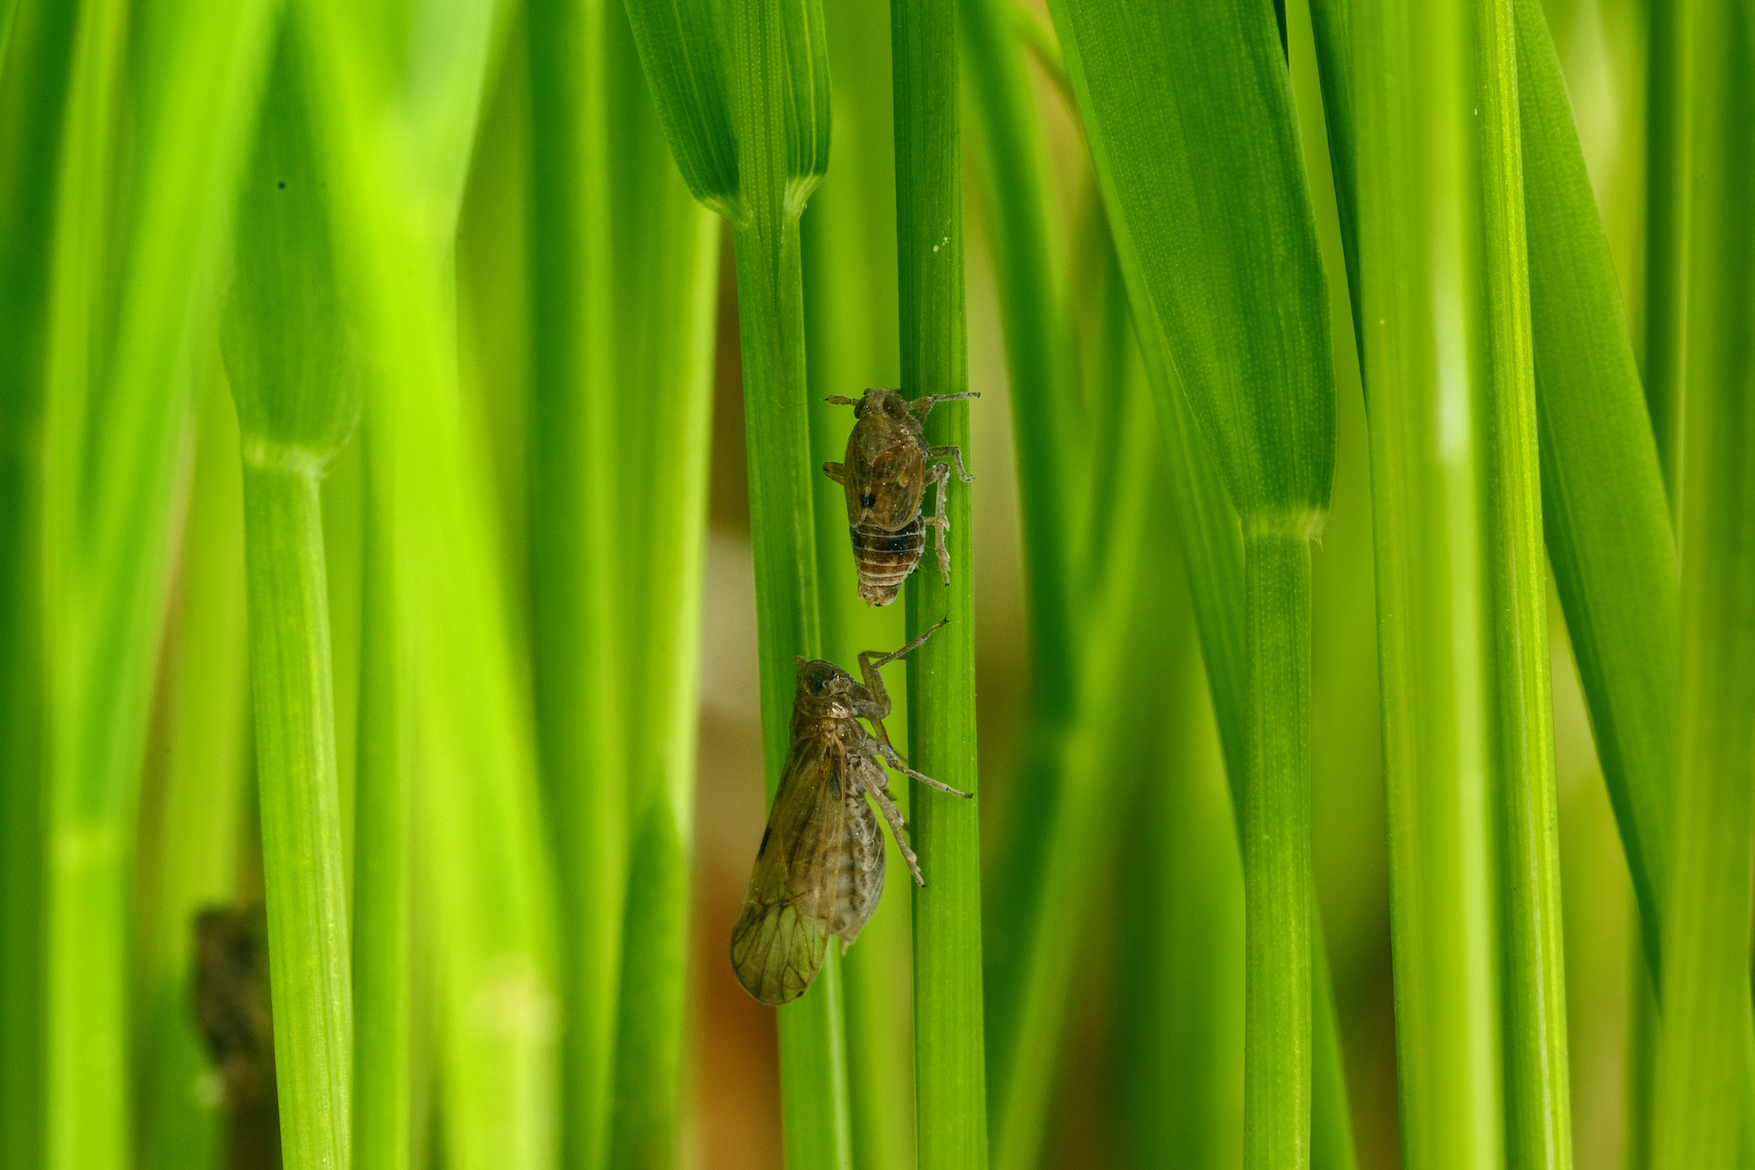 The quality of the host plant is responsible for wing growth and migratory behavior among brown planthopper insects.